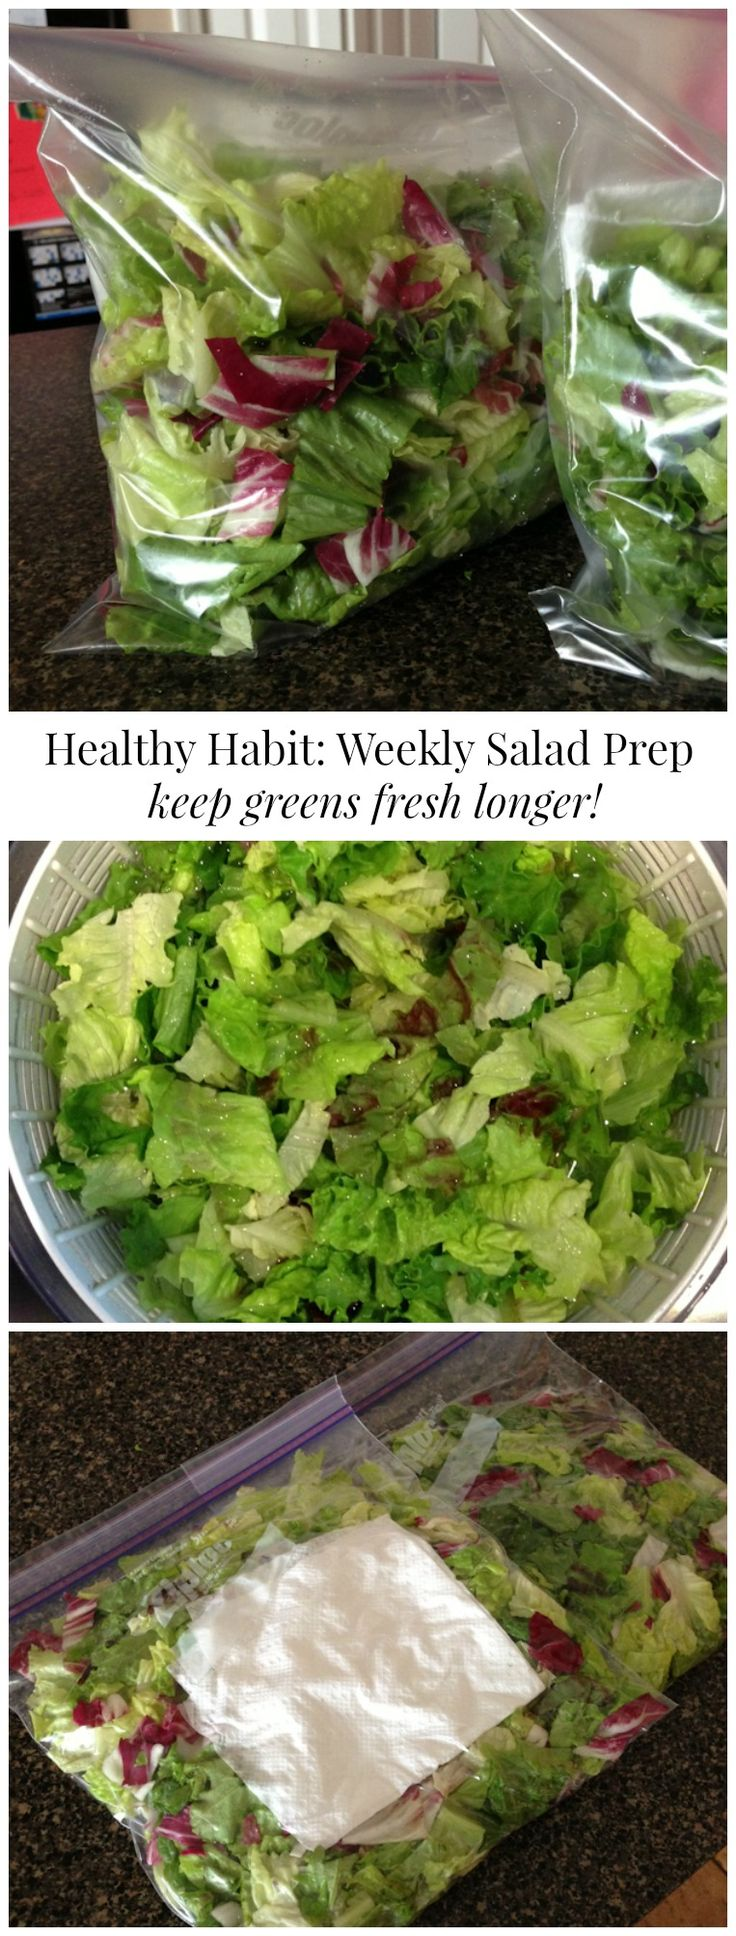 Weekly Salad Prep: Helps keep greens fresh longer and easier to make salads daily. I'm ready to get back in the salad!